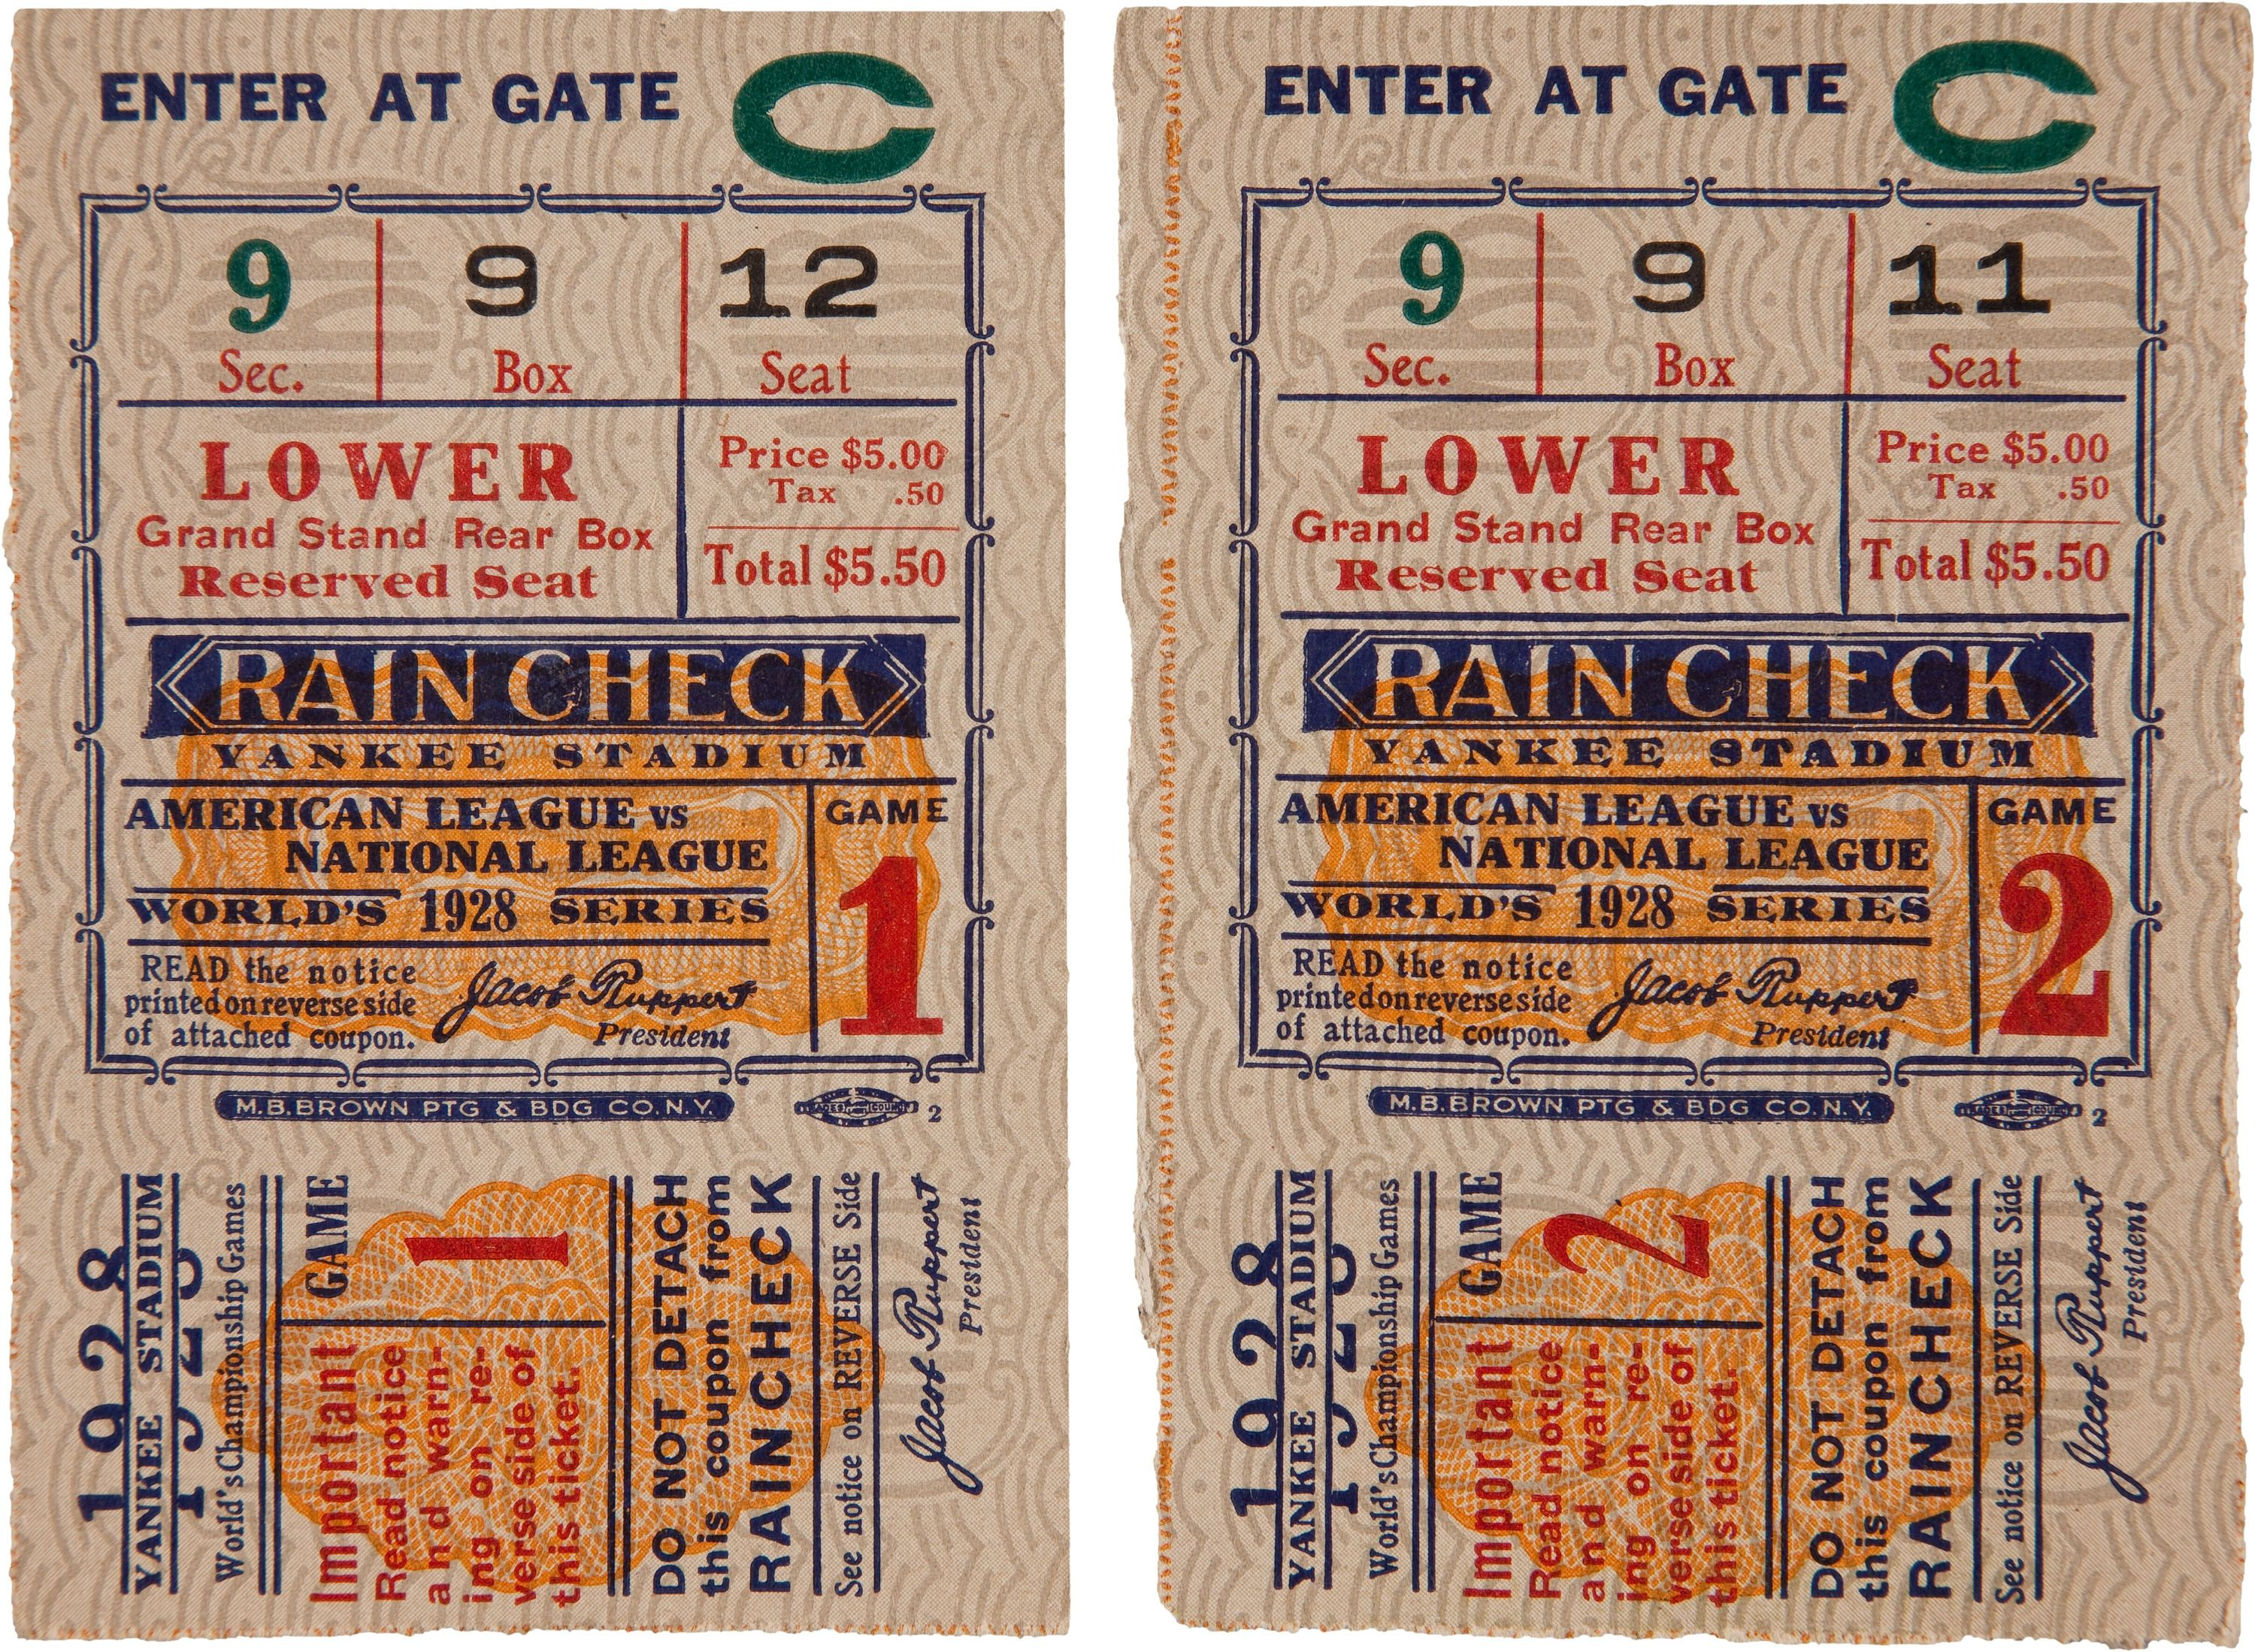 movie ticket stub wedding invitation%0A Baseball       World Series Games One  u     Two Ticket Stubs      A